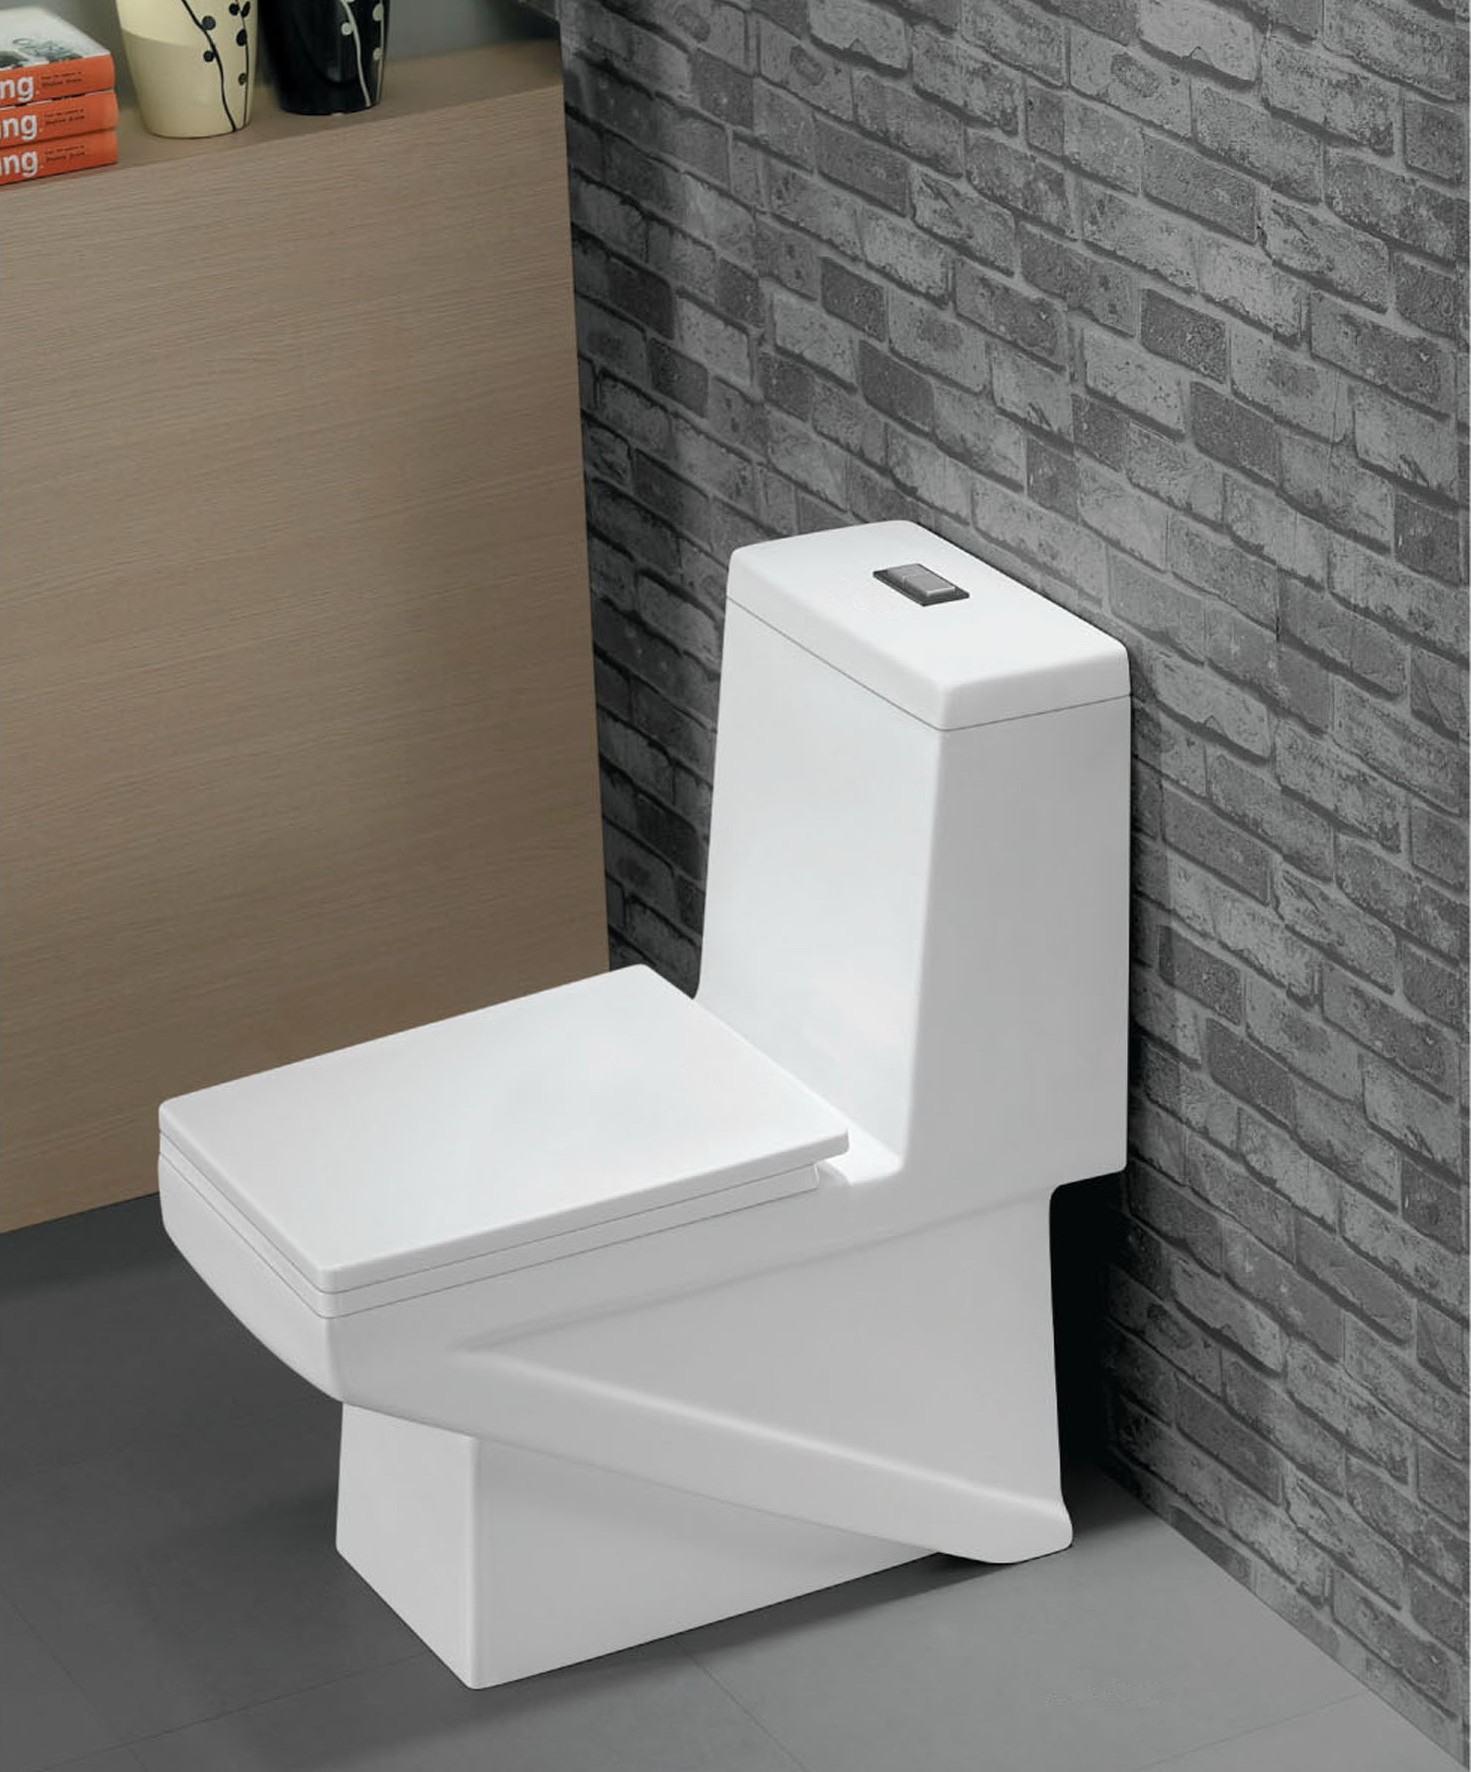 Lucido modern bathroom toilet for Bathroom or restroom